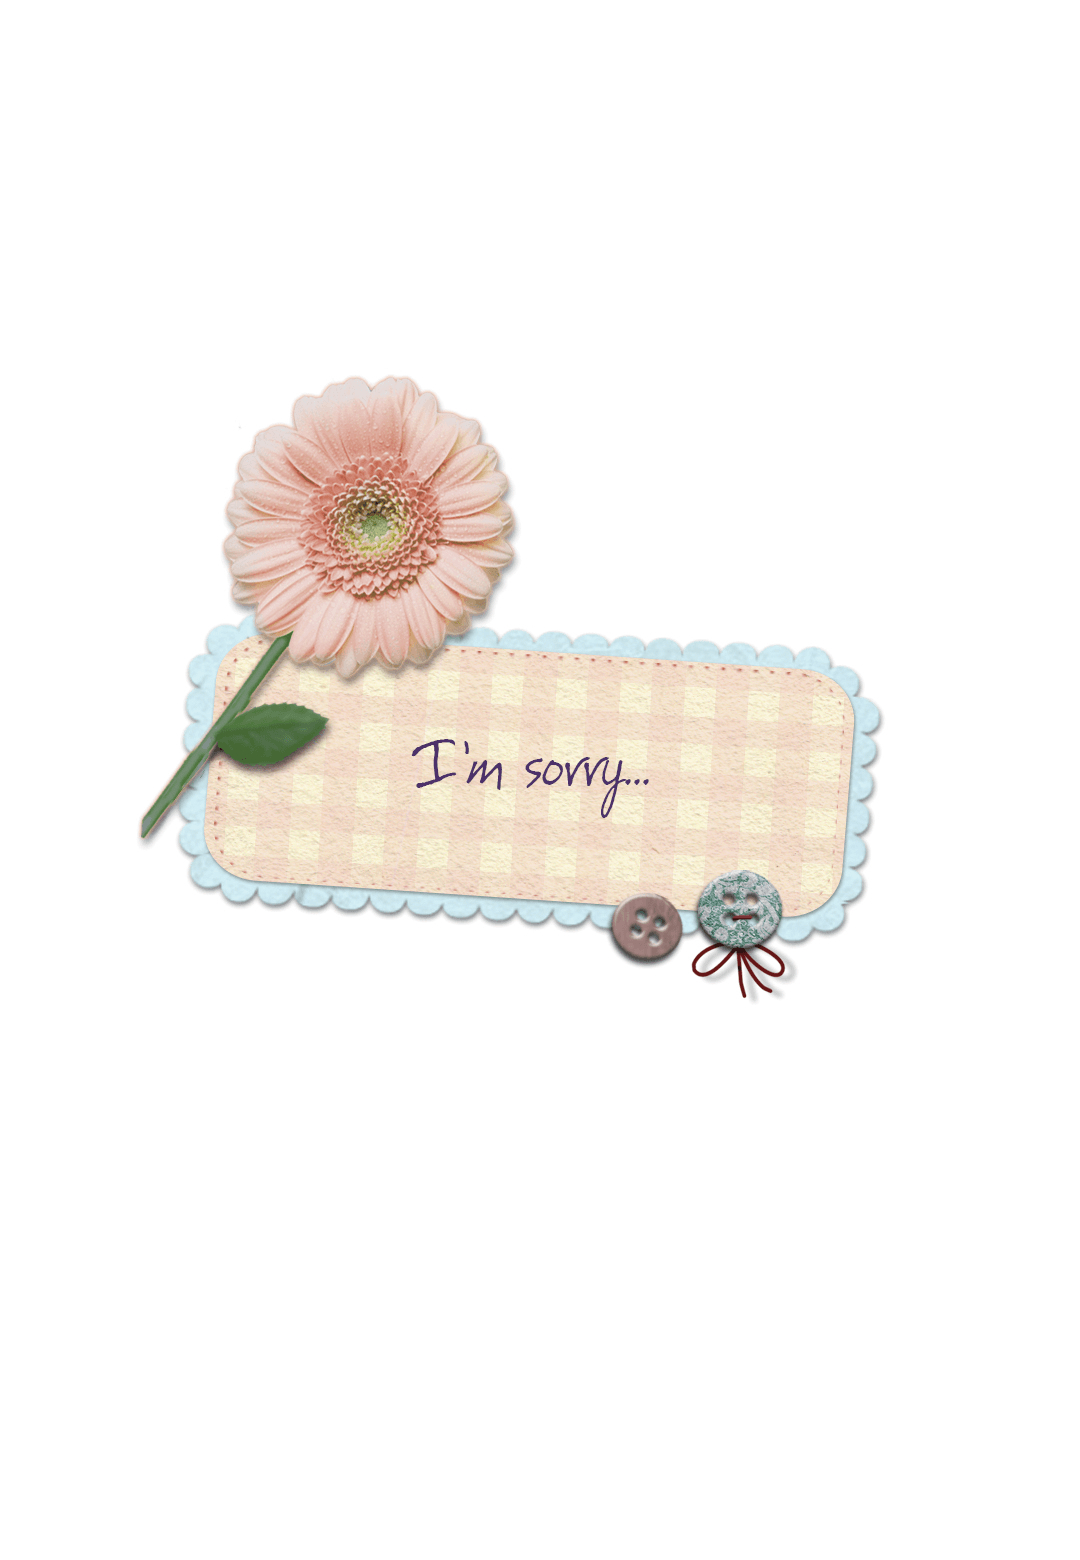 Im Sorry - Sorry Card (Free) | Greetings Island - Free Printable I Am Sorry Cards